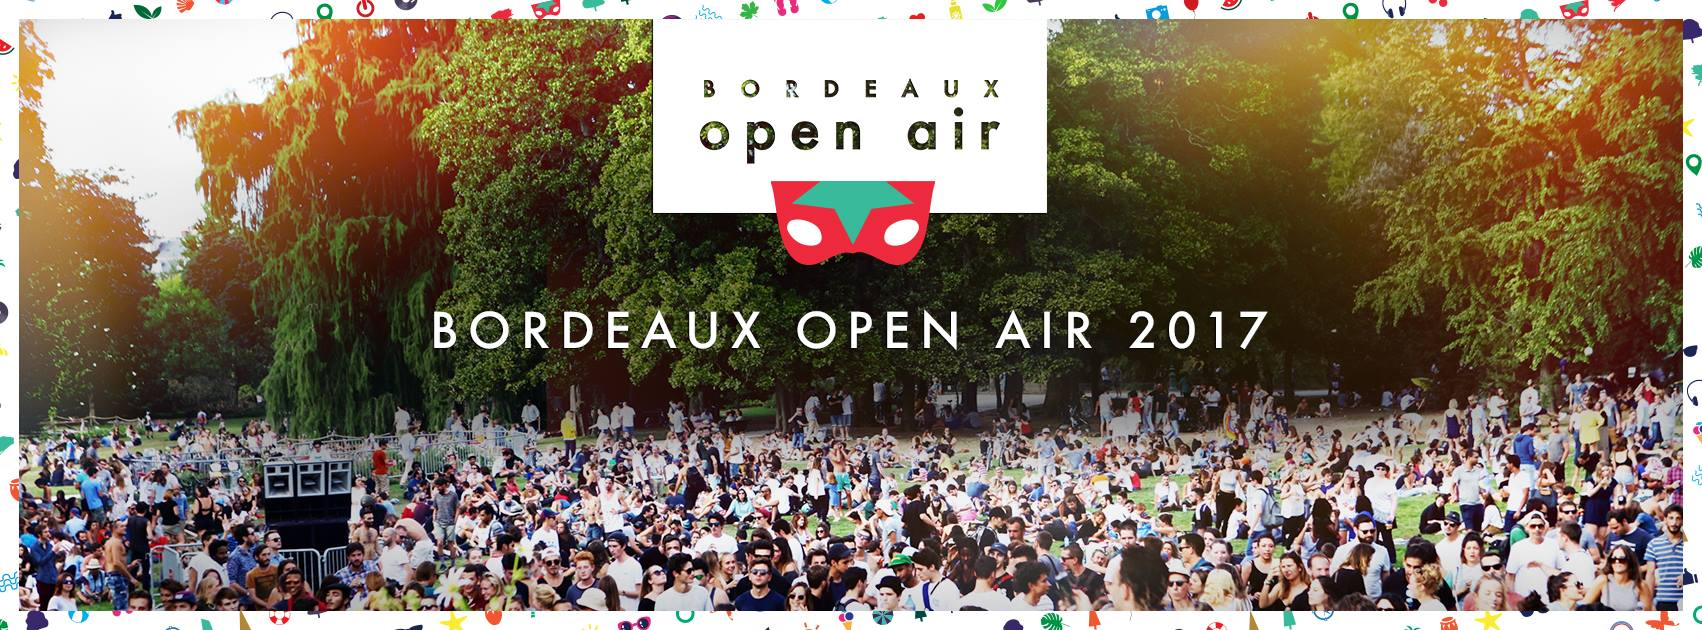 les-bons-plans-bordeaux-festival-bordeaux-open-air-2017